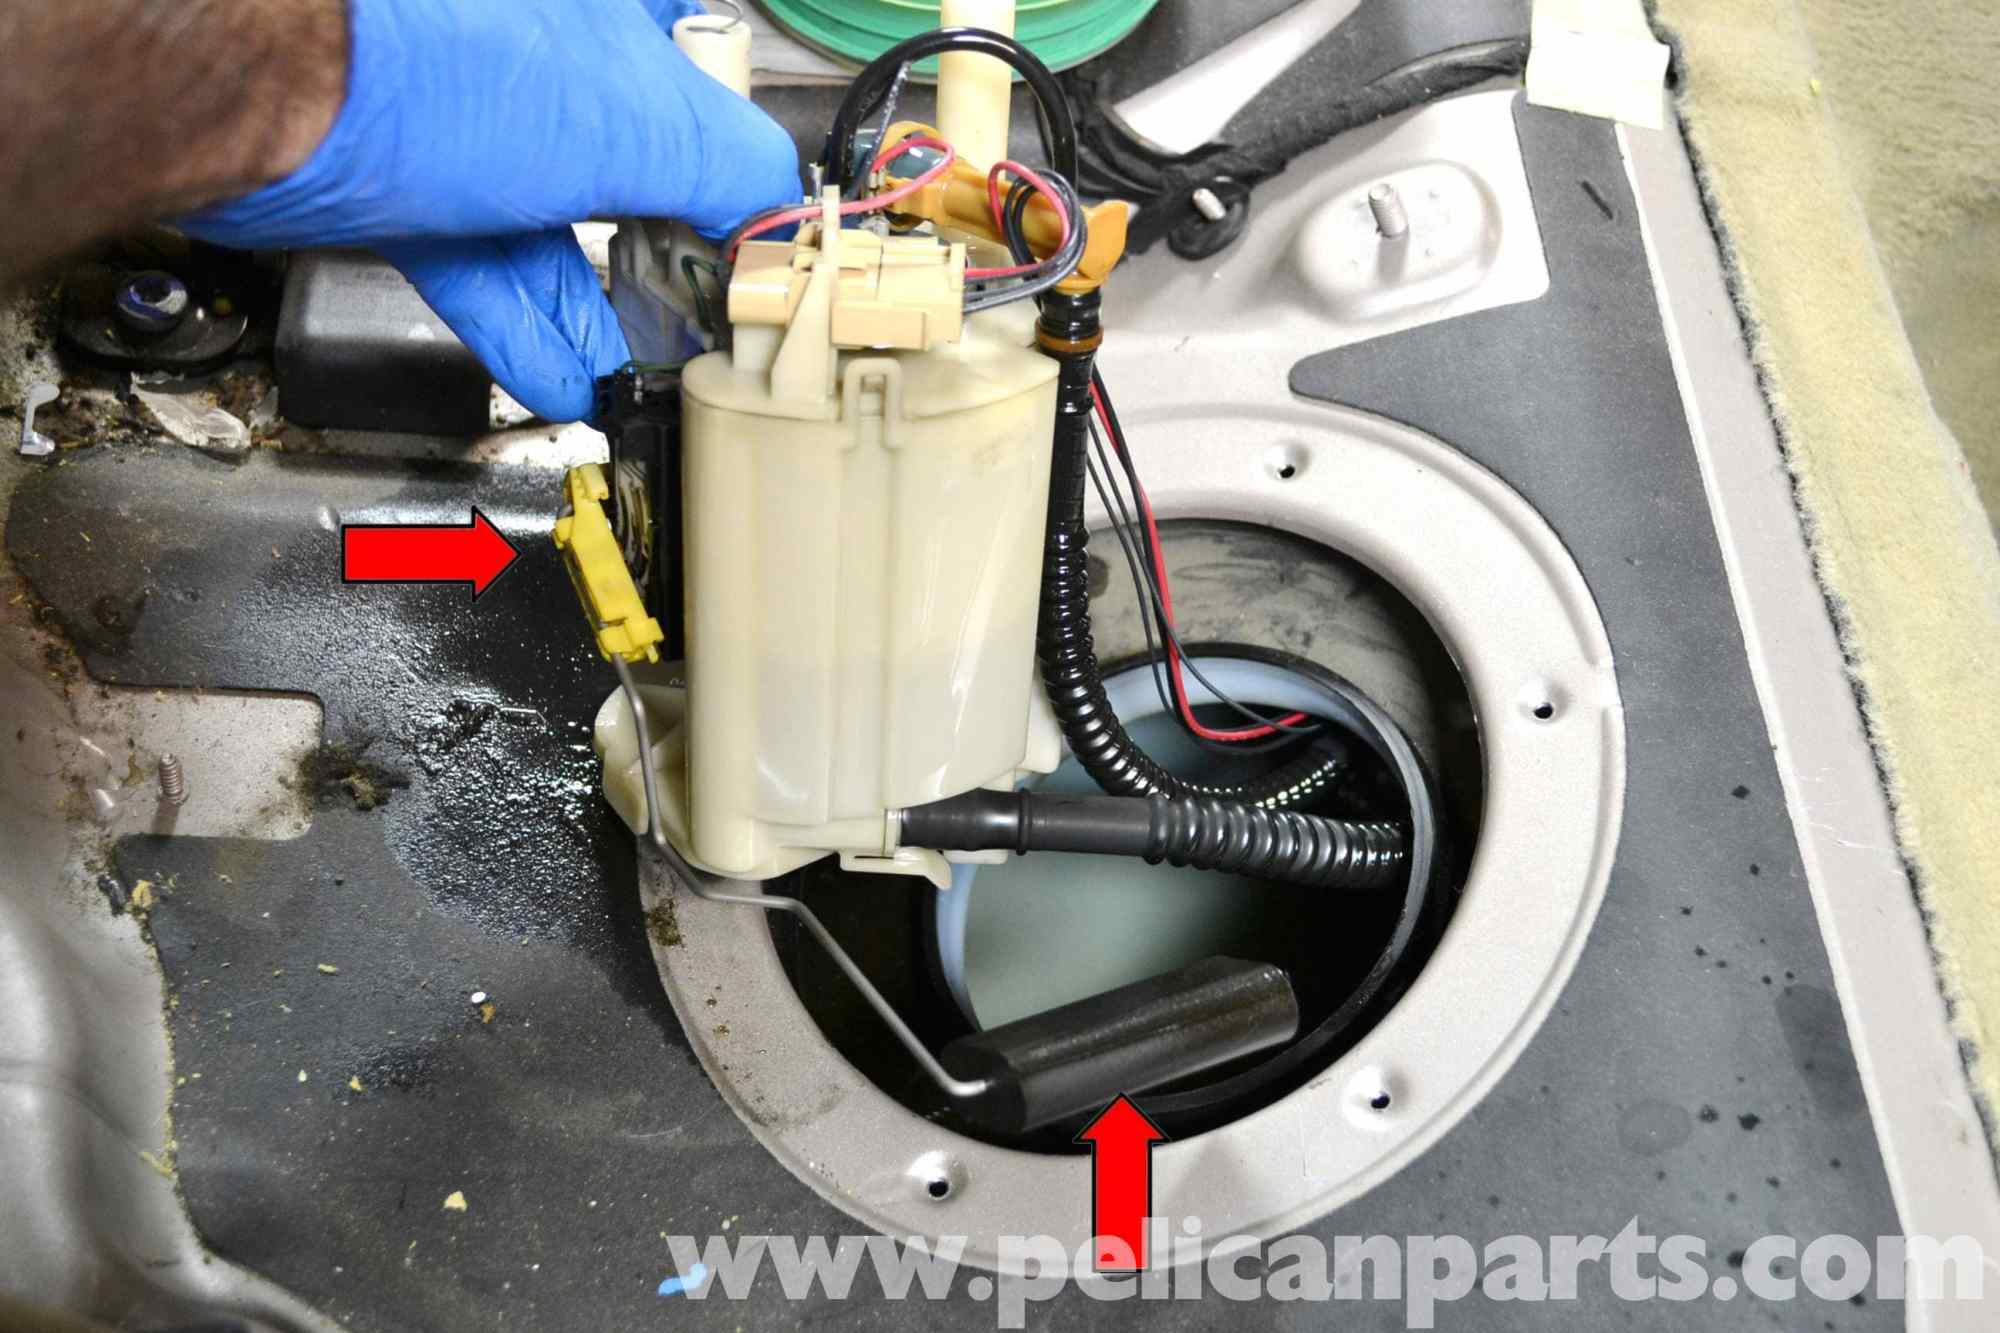 hight resolution of large image extra large image mercedes benz w203 fuel pump